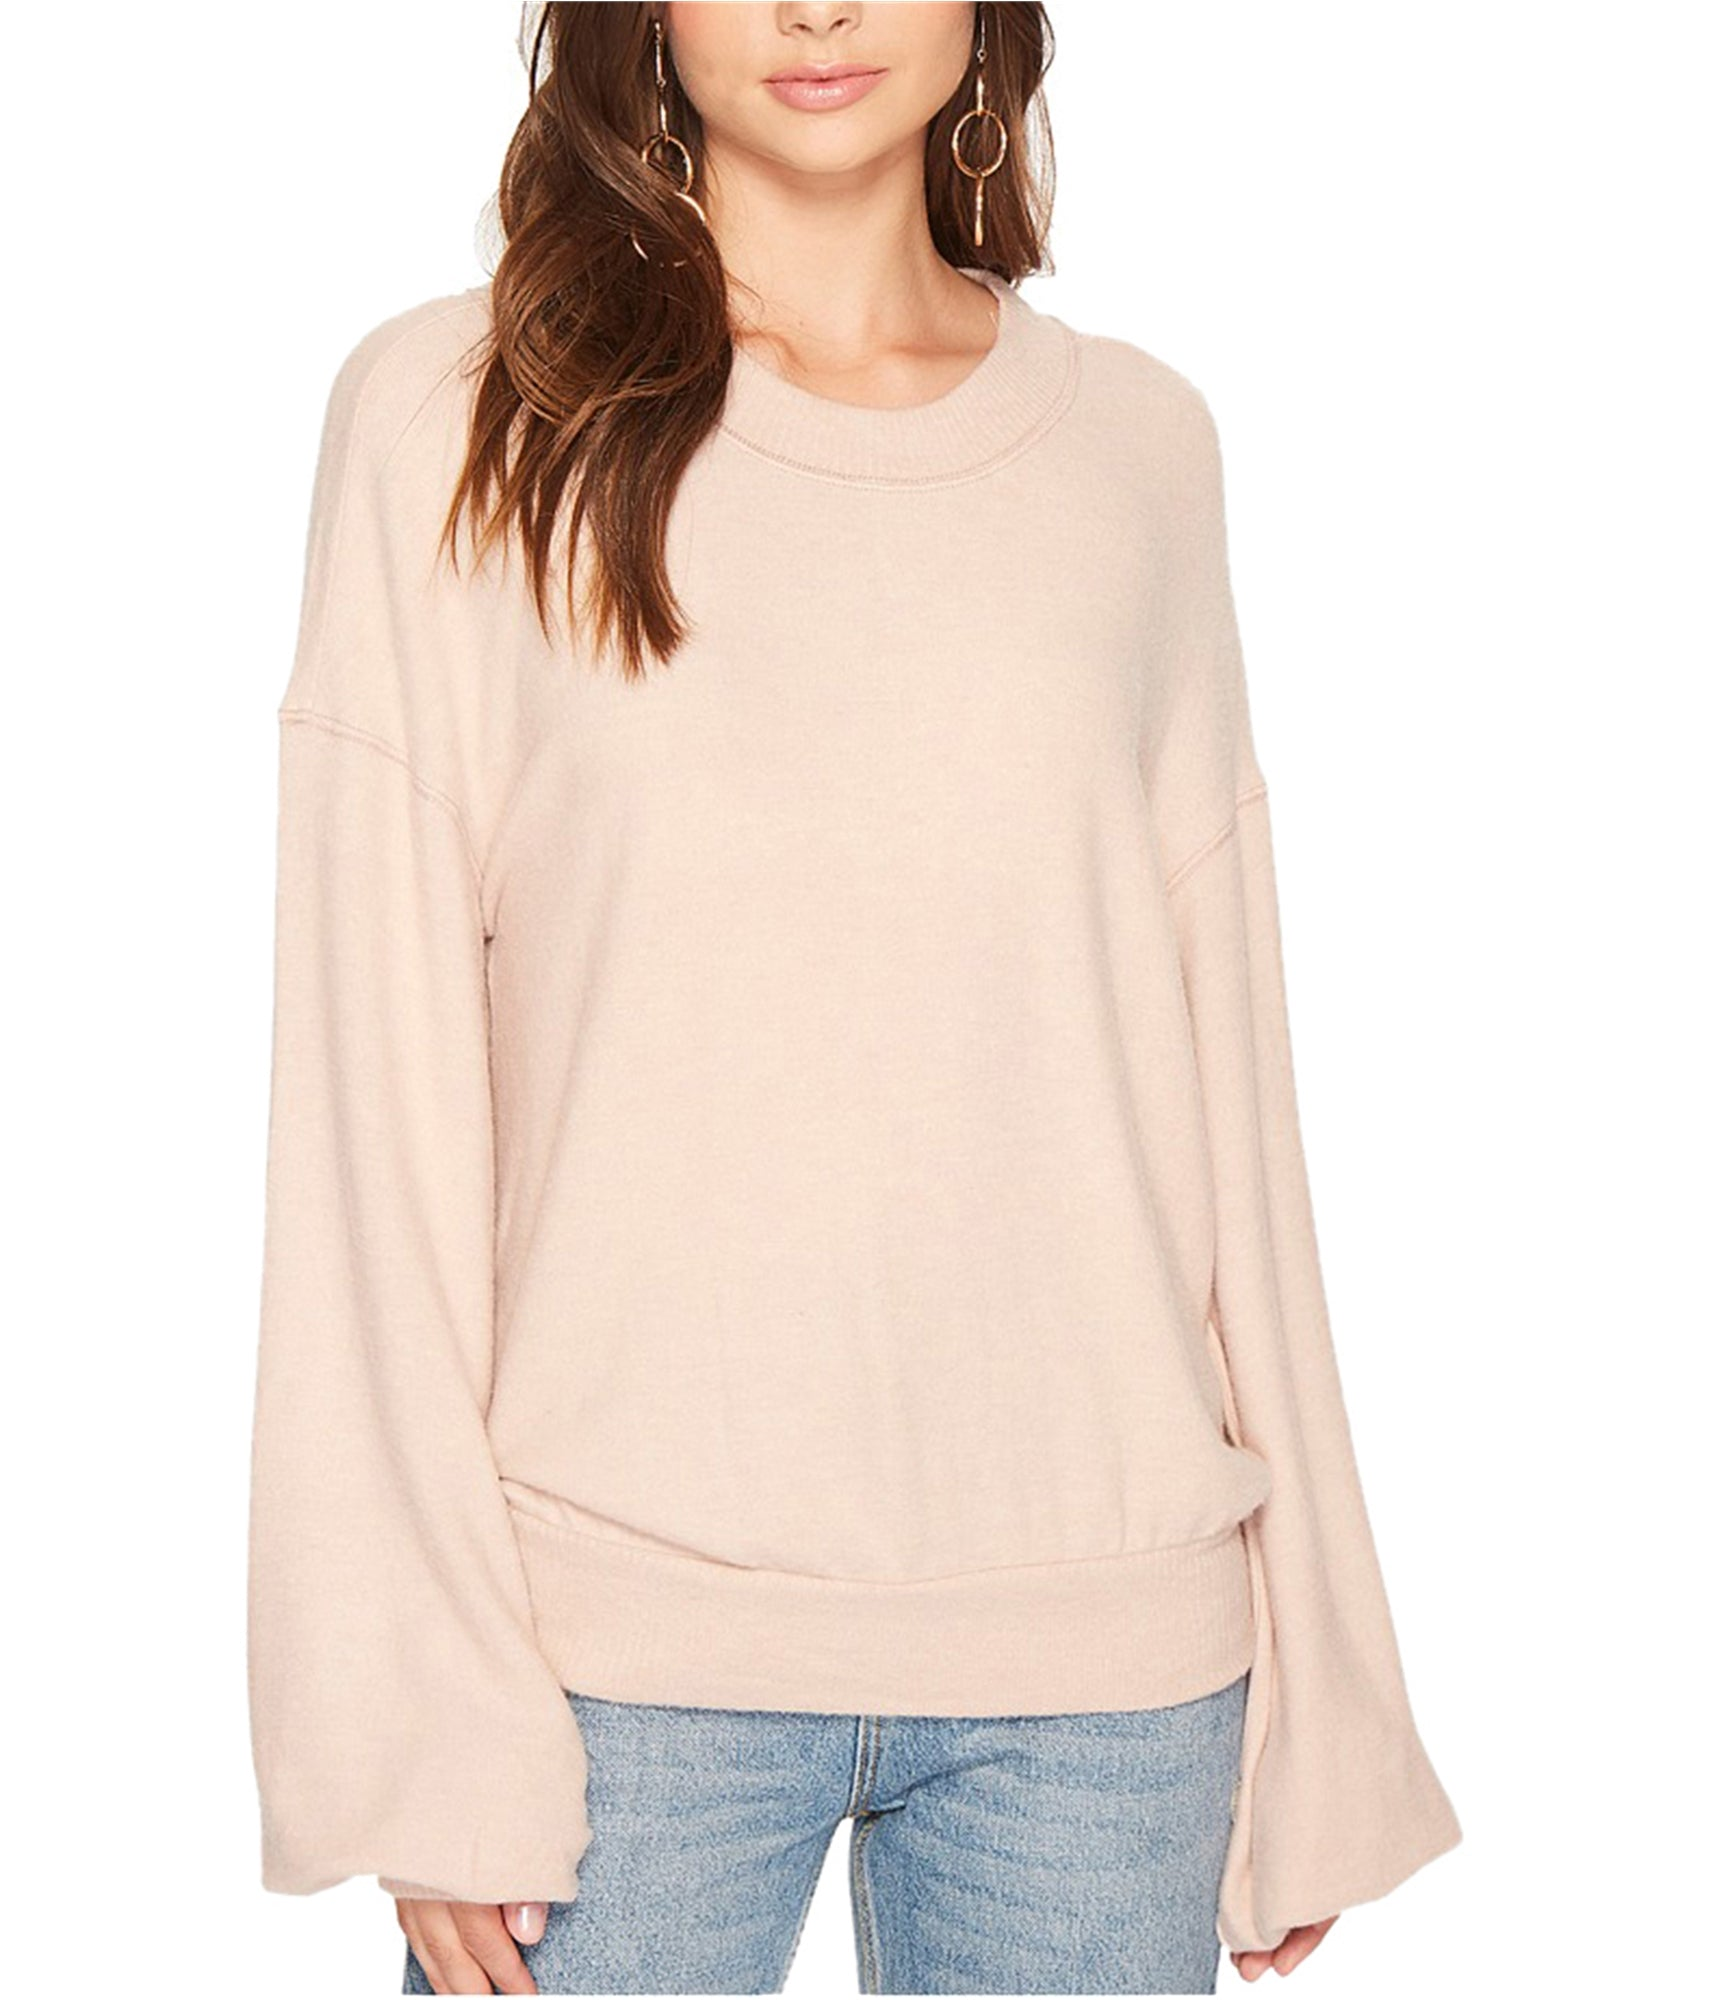 Free People TGIF Pullover Sweater in Almond